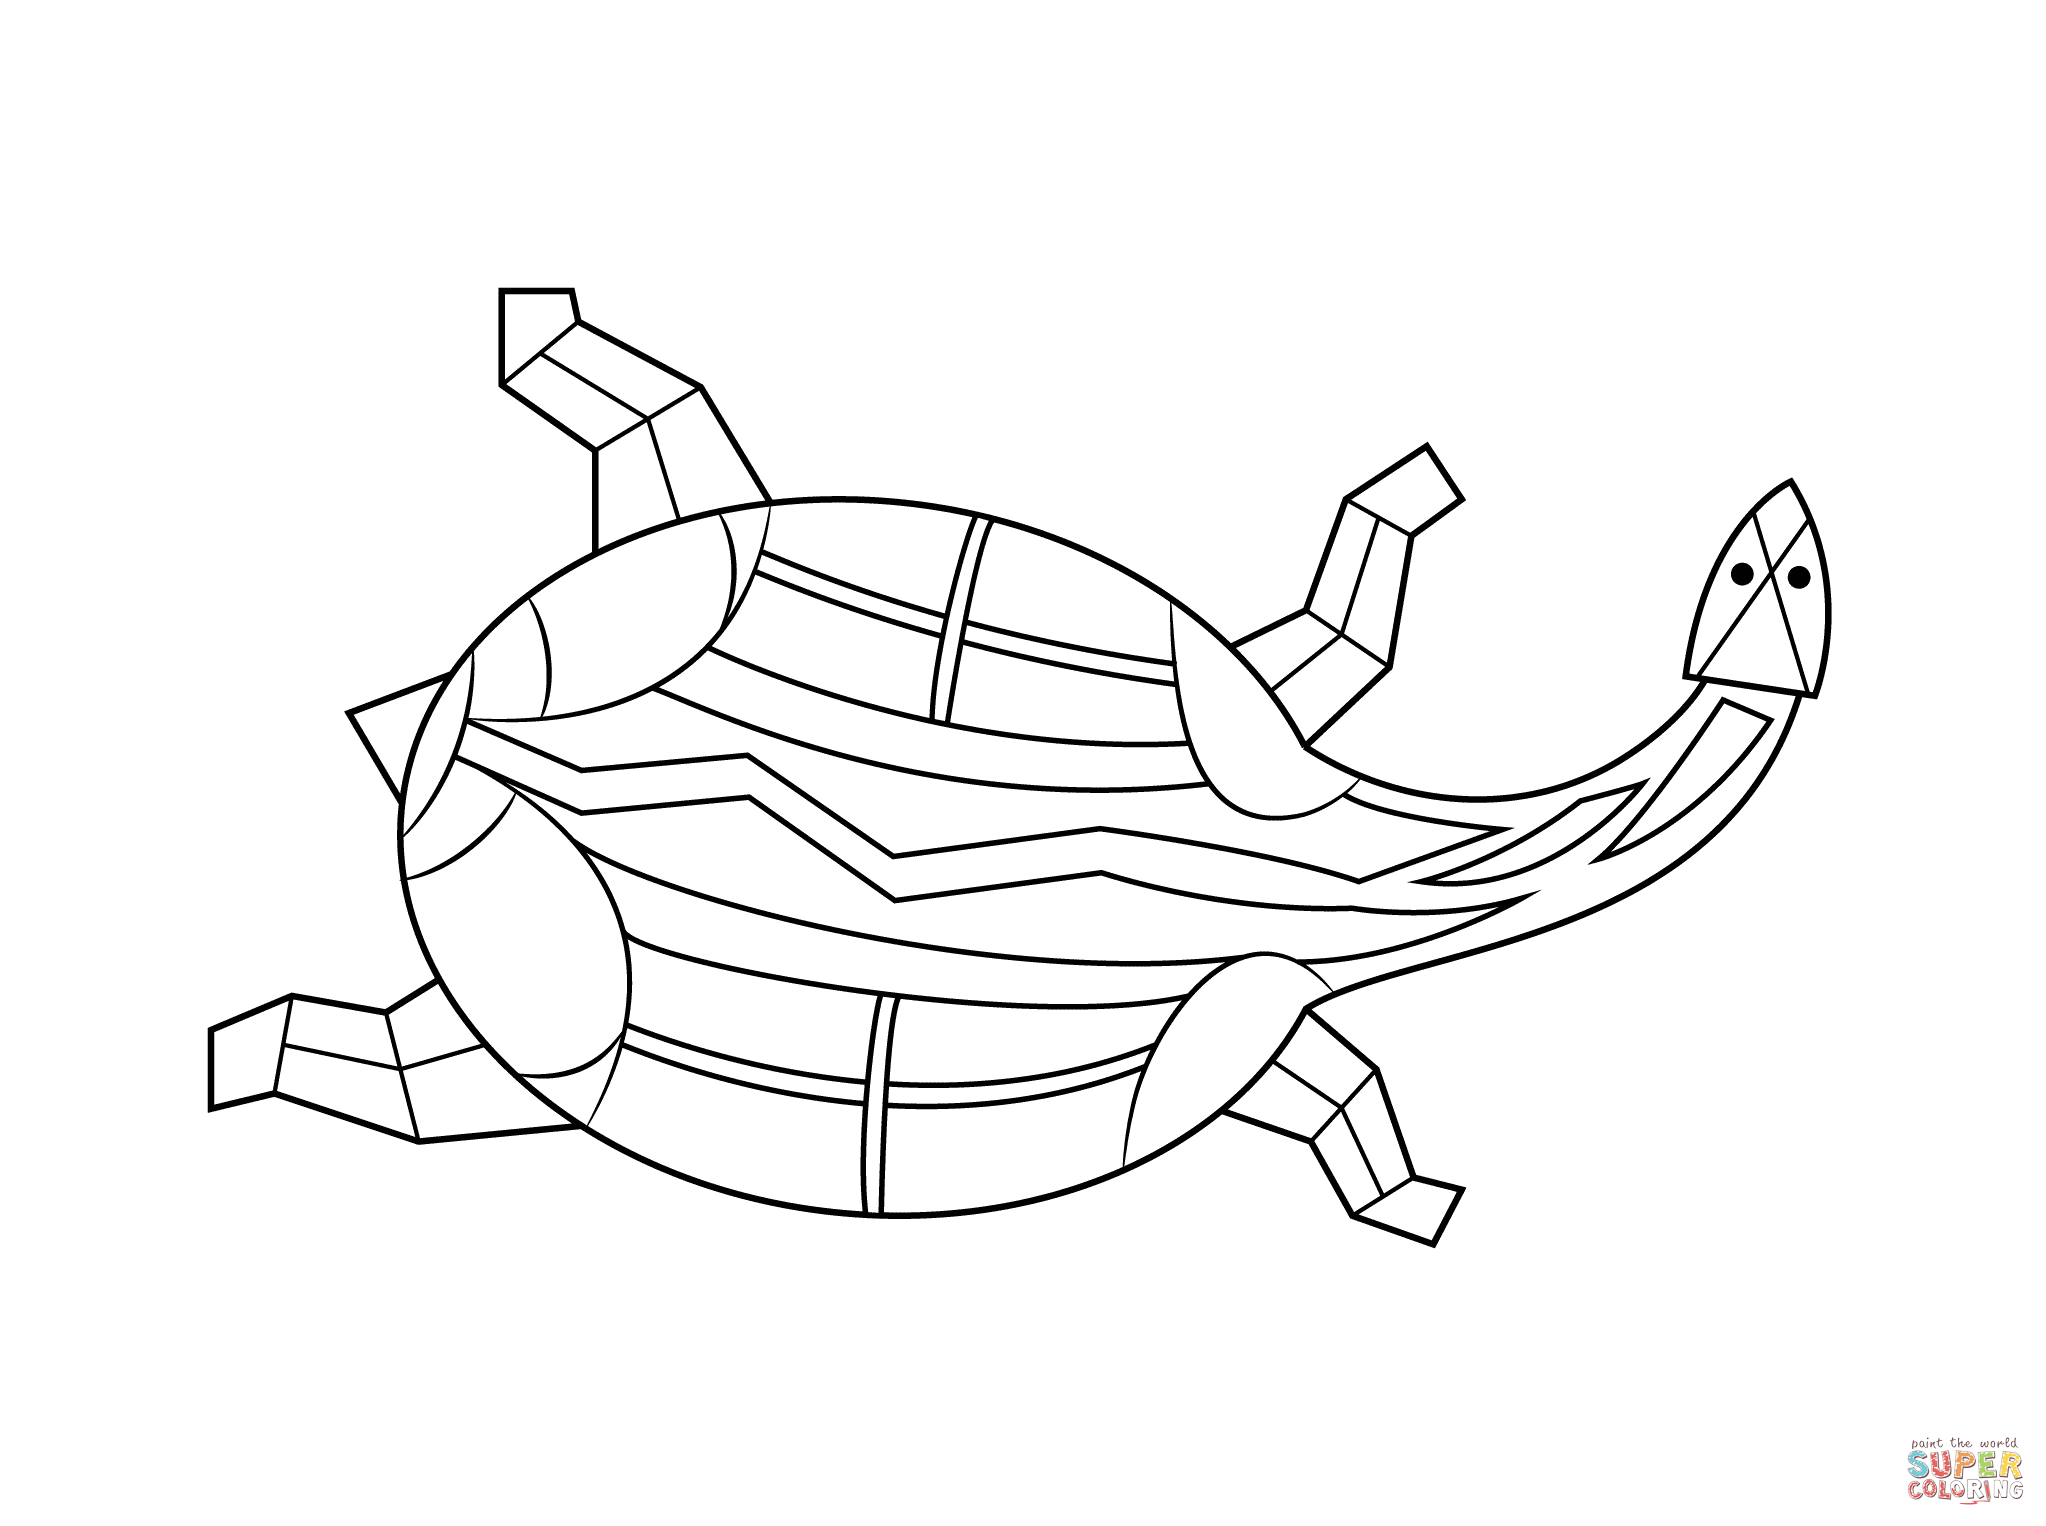 2046x1526 Aboriginal Painting Of Turtle Coloring Page Free Printable